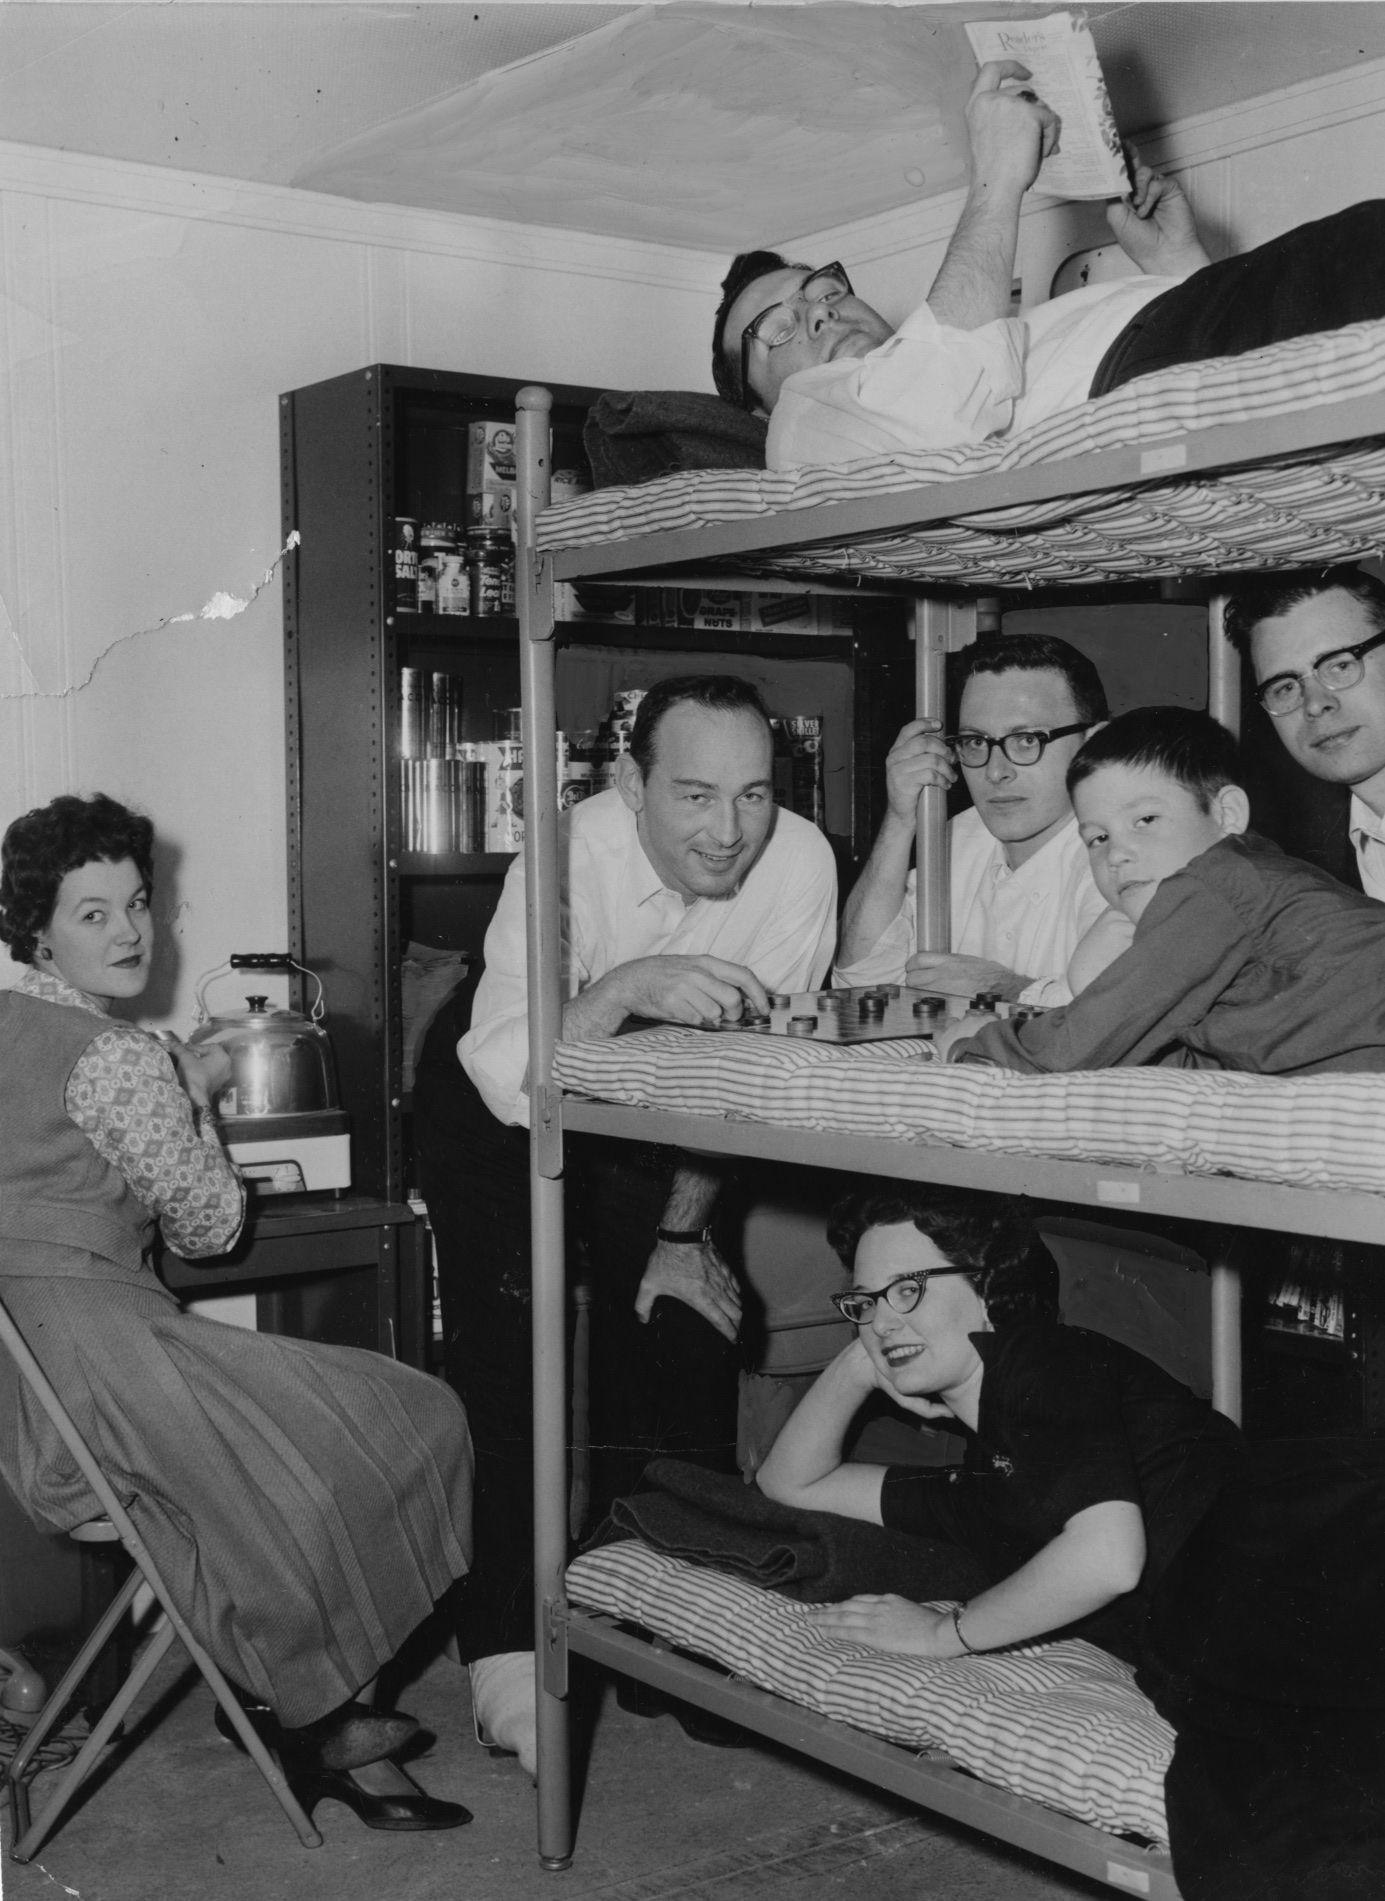 """March 18, 1960: The seven people who spent last weekend in a simulated fallout shelter at American Institute of Research, 410 Amberson Avenue, Shadyside. On the top bunk, Robert Smith, reading. Nancy Newton is at the """"kitchen"""" stove at left. Second bunk: Frank McKenna, Gil Dannels, Tommy McKenna, 8, and James Altman. In lower bunk is Sara Bryson. (Bill Levis/Pittsburgh Sun-Telegraph)"""